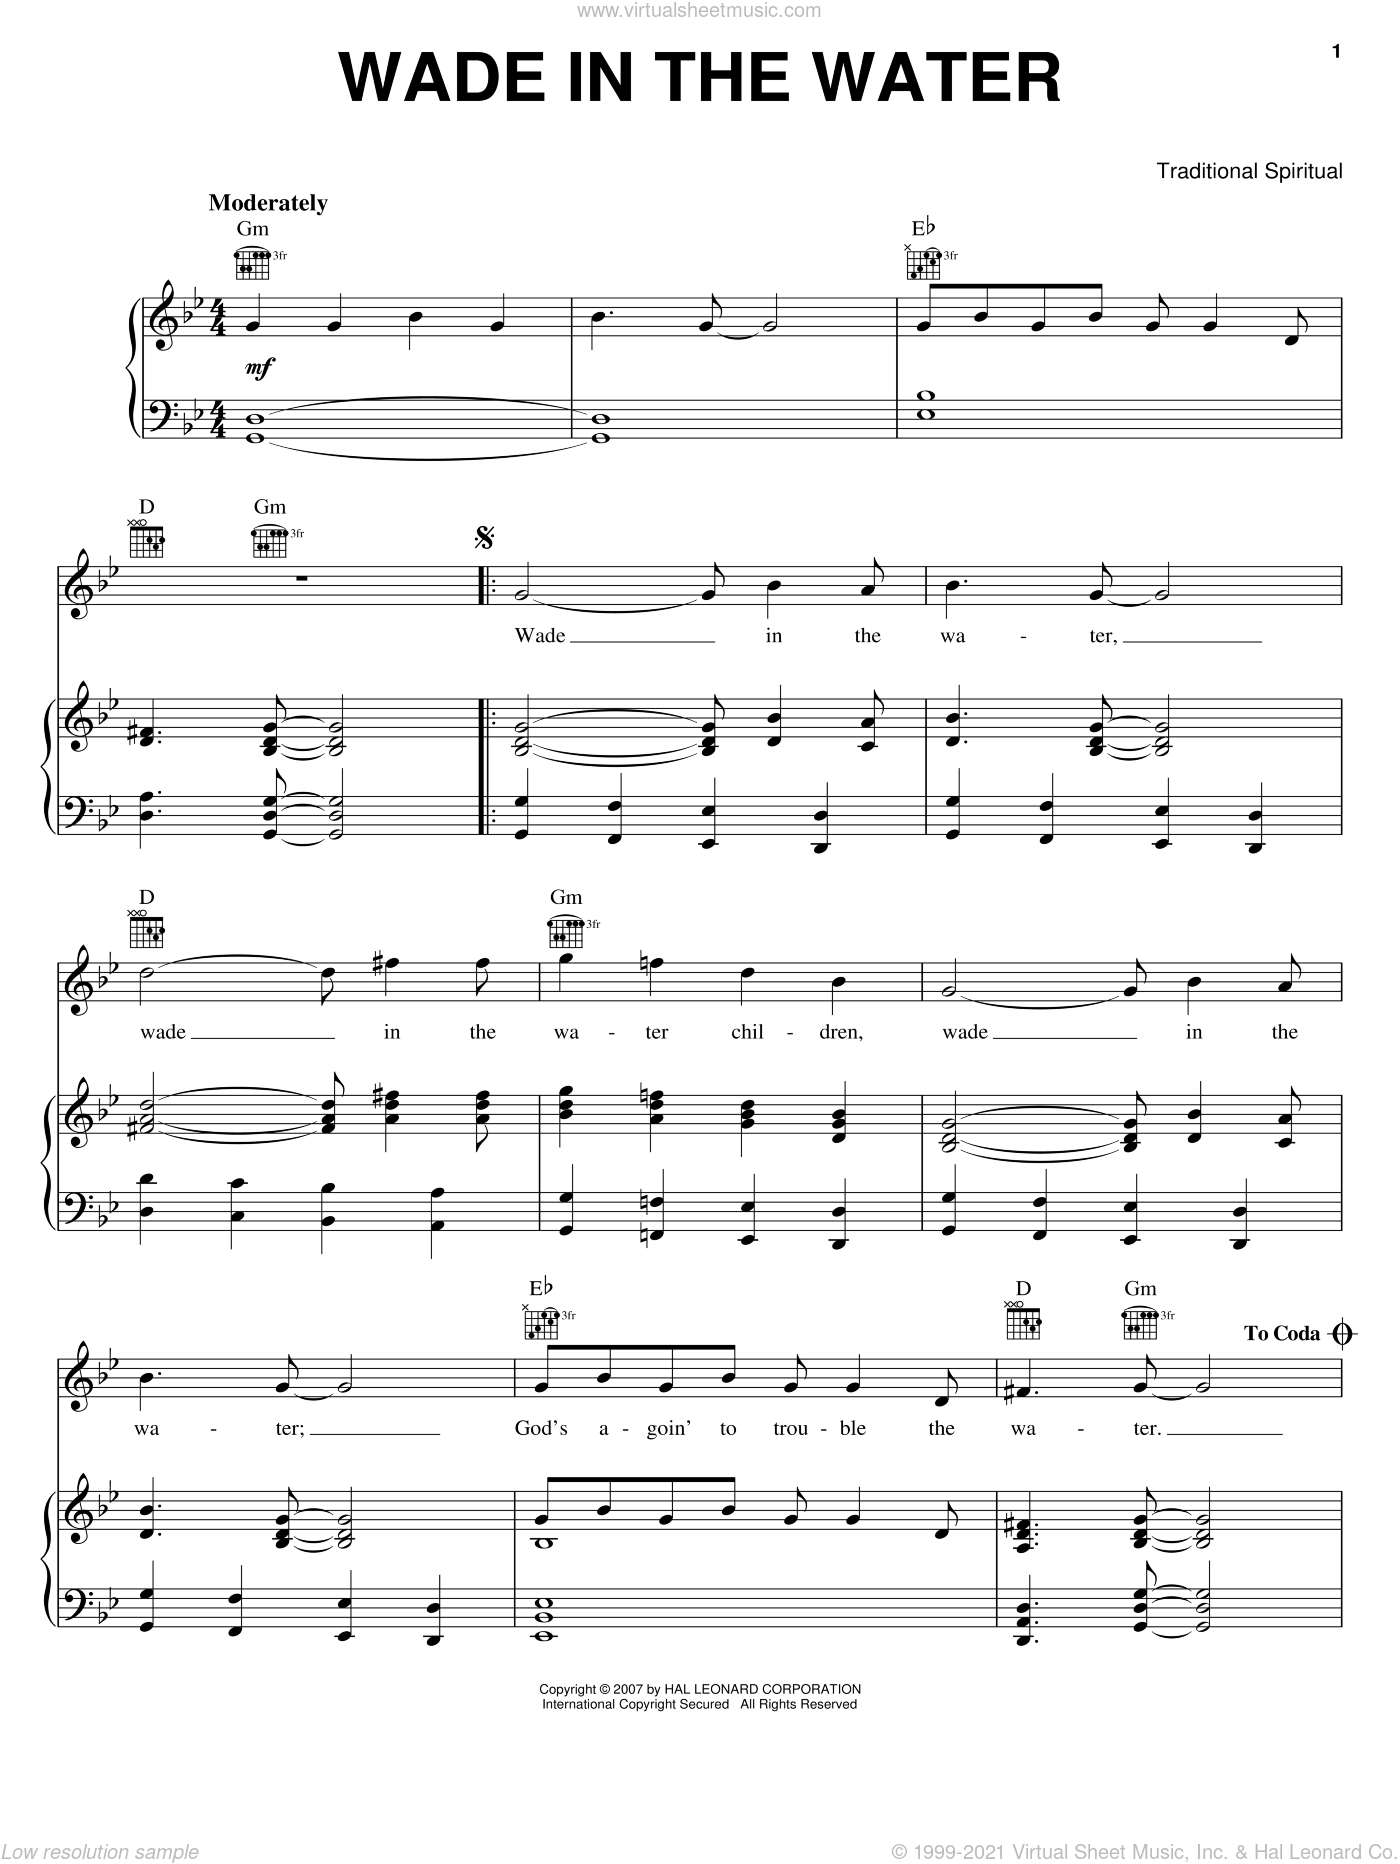 Wade In The Water sheet music for voice, piano or guitar, intermediate skill level